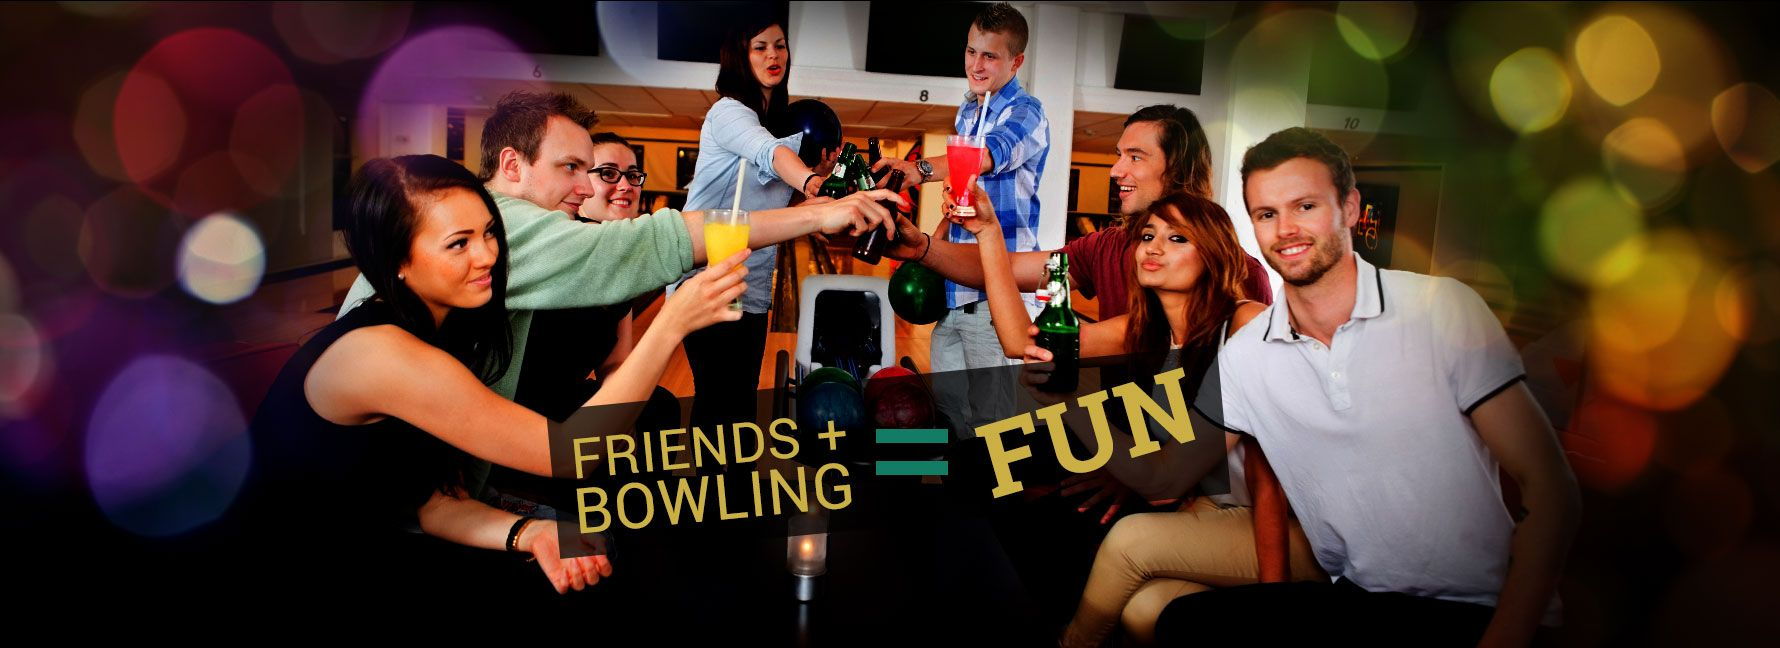 Bowling is a fun activity for family and friends fun